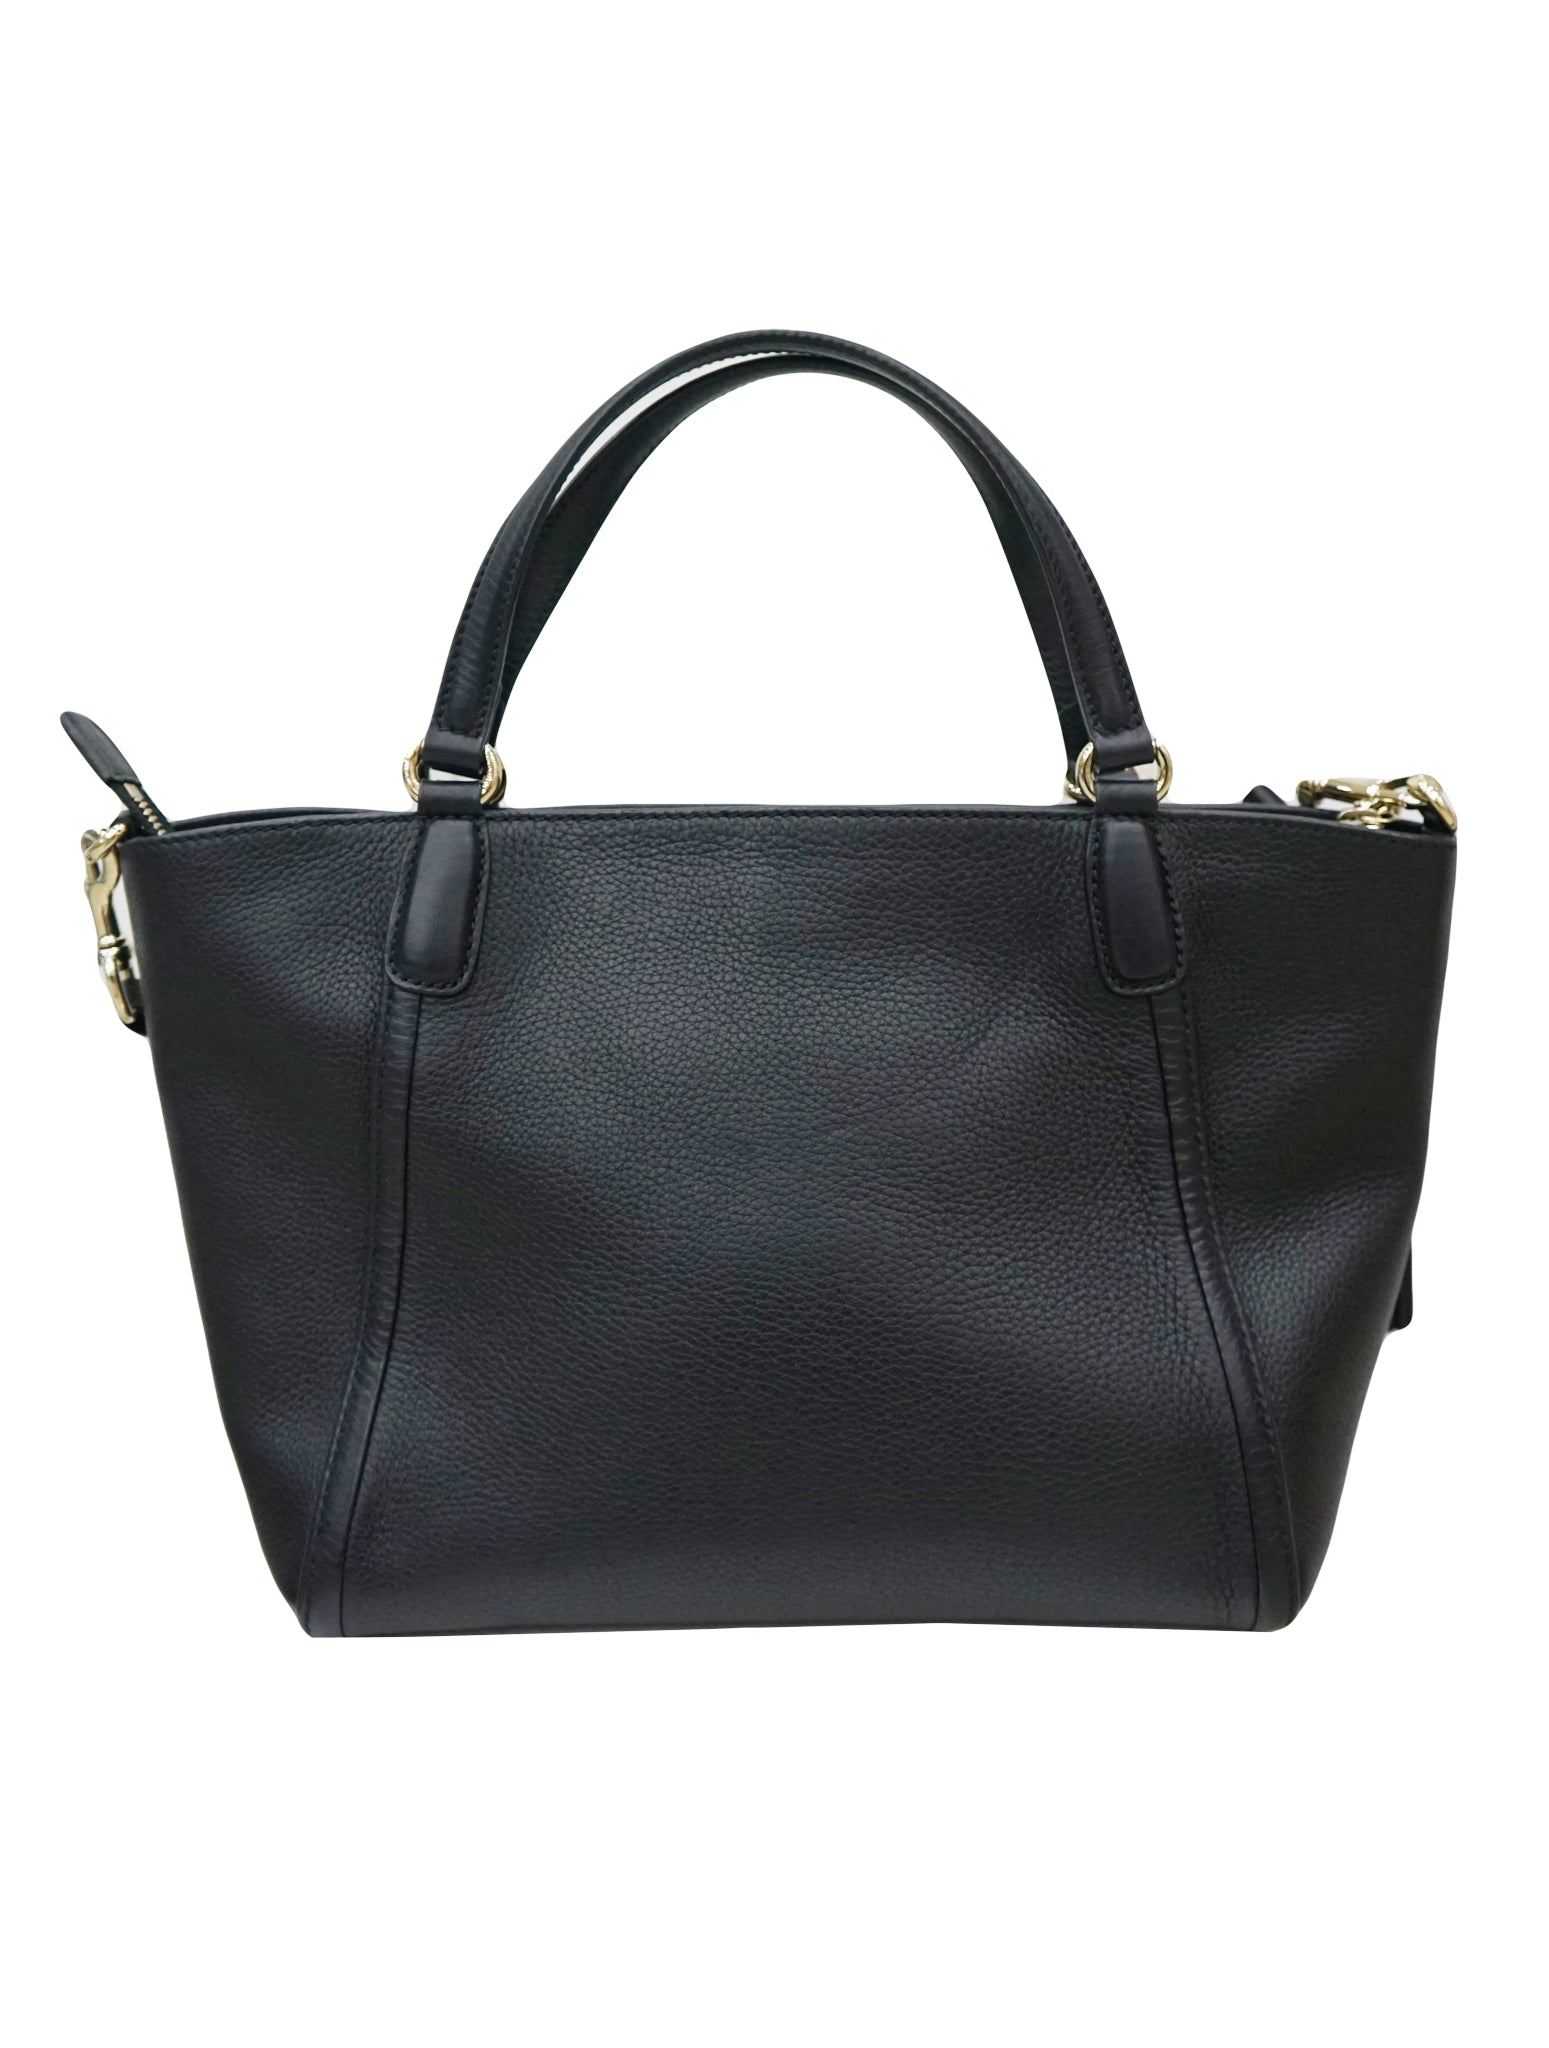 PEBBLED LEATHER SOHO TOTE BAG